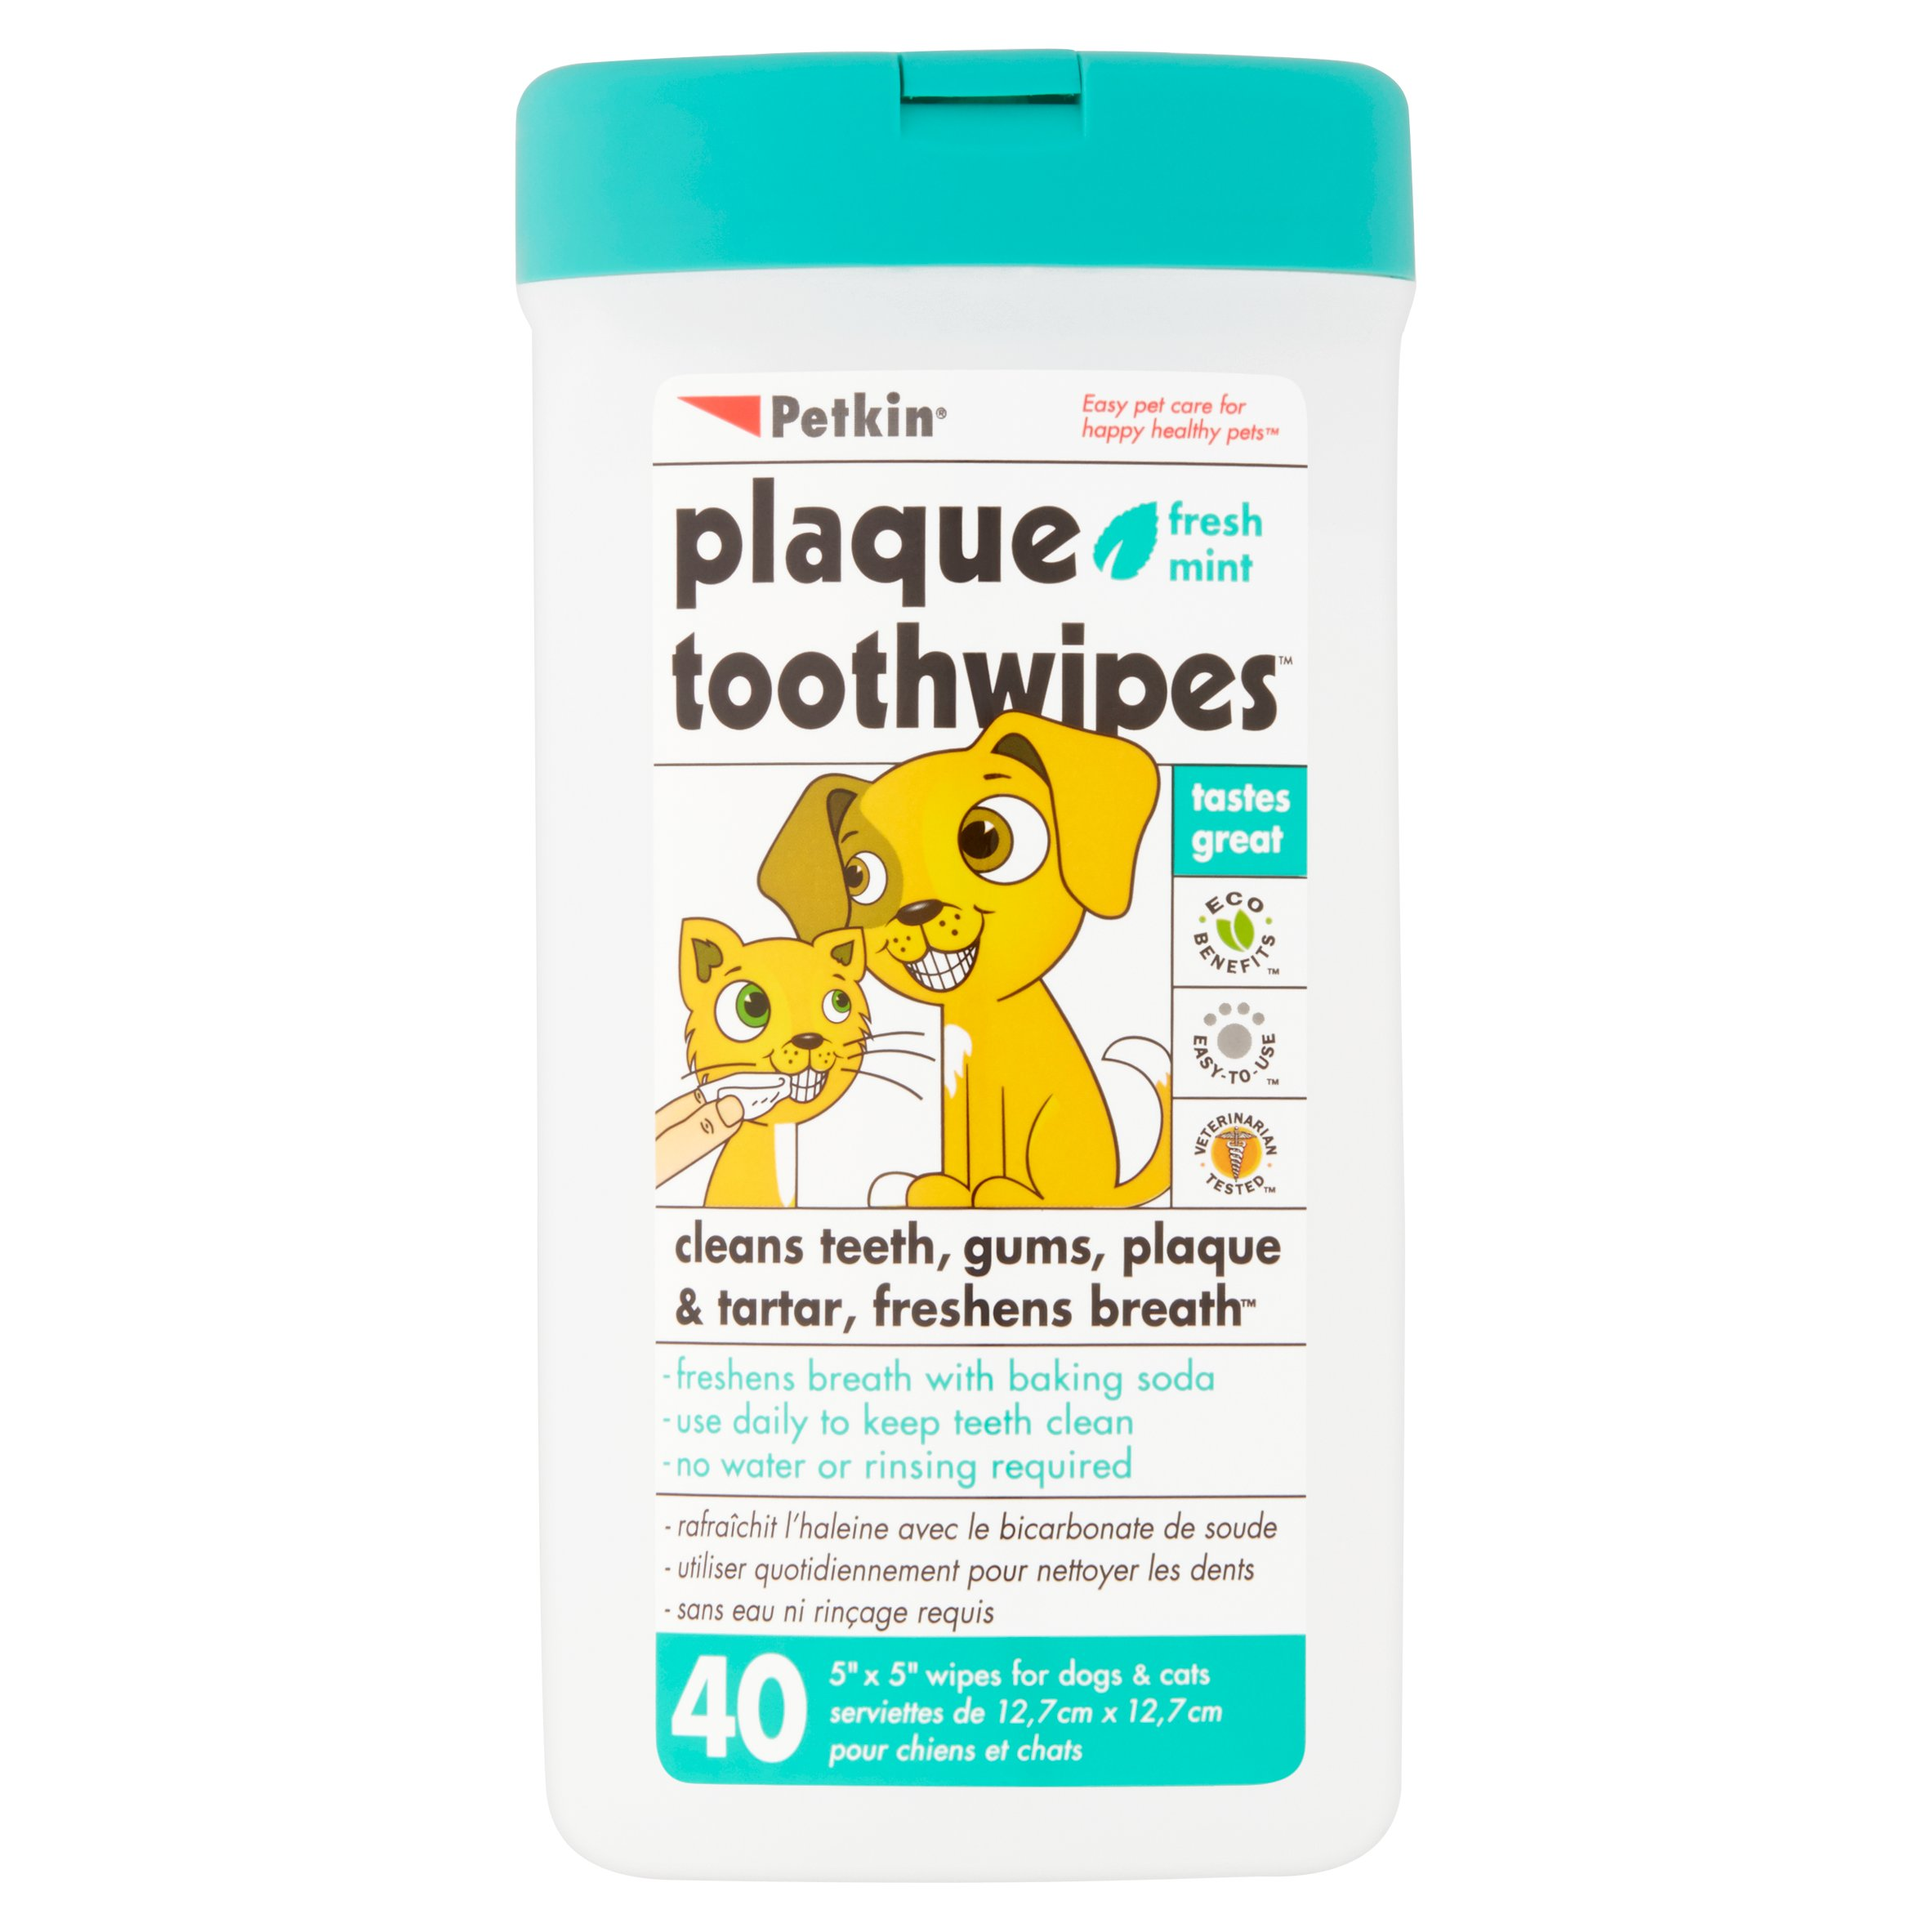 Petkin Fresh Mint Plaque Toothwipes, 40 count